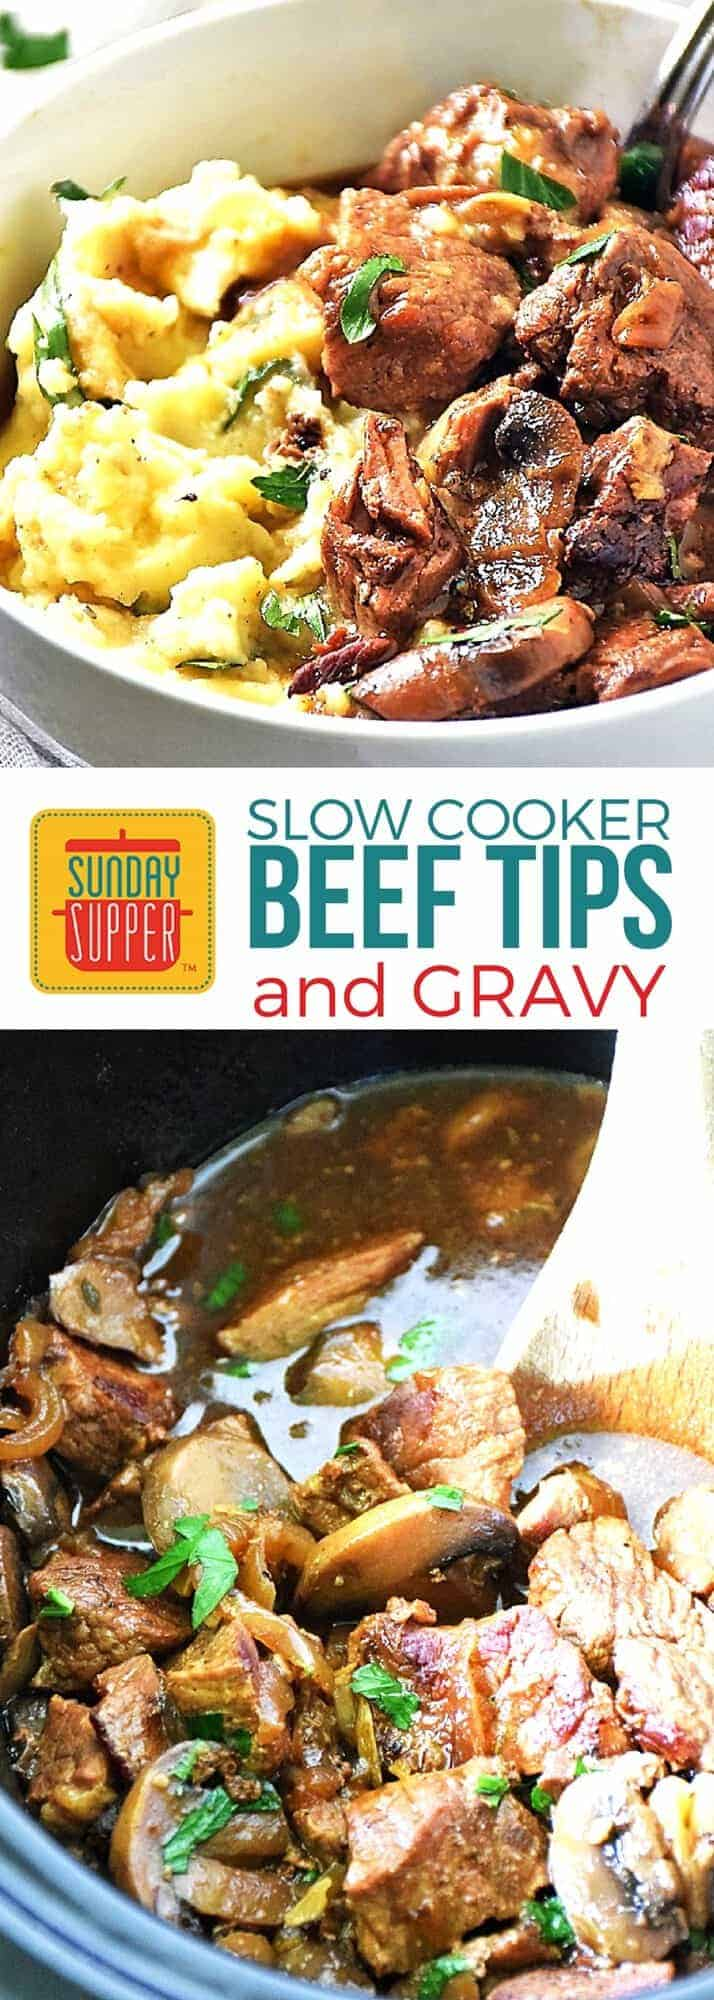 Comfort food at its best! Our Slow Cooker Beef Tips and Gravy is an easy recipe that will satisfy you & feed your comfort food cravings! Set it and forget it and come home to a comforting family dinner. Budget-friendly and family friendly meal! #SundaySupper #EasyRecipe #SlowCookerRecipes